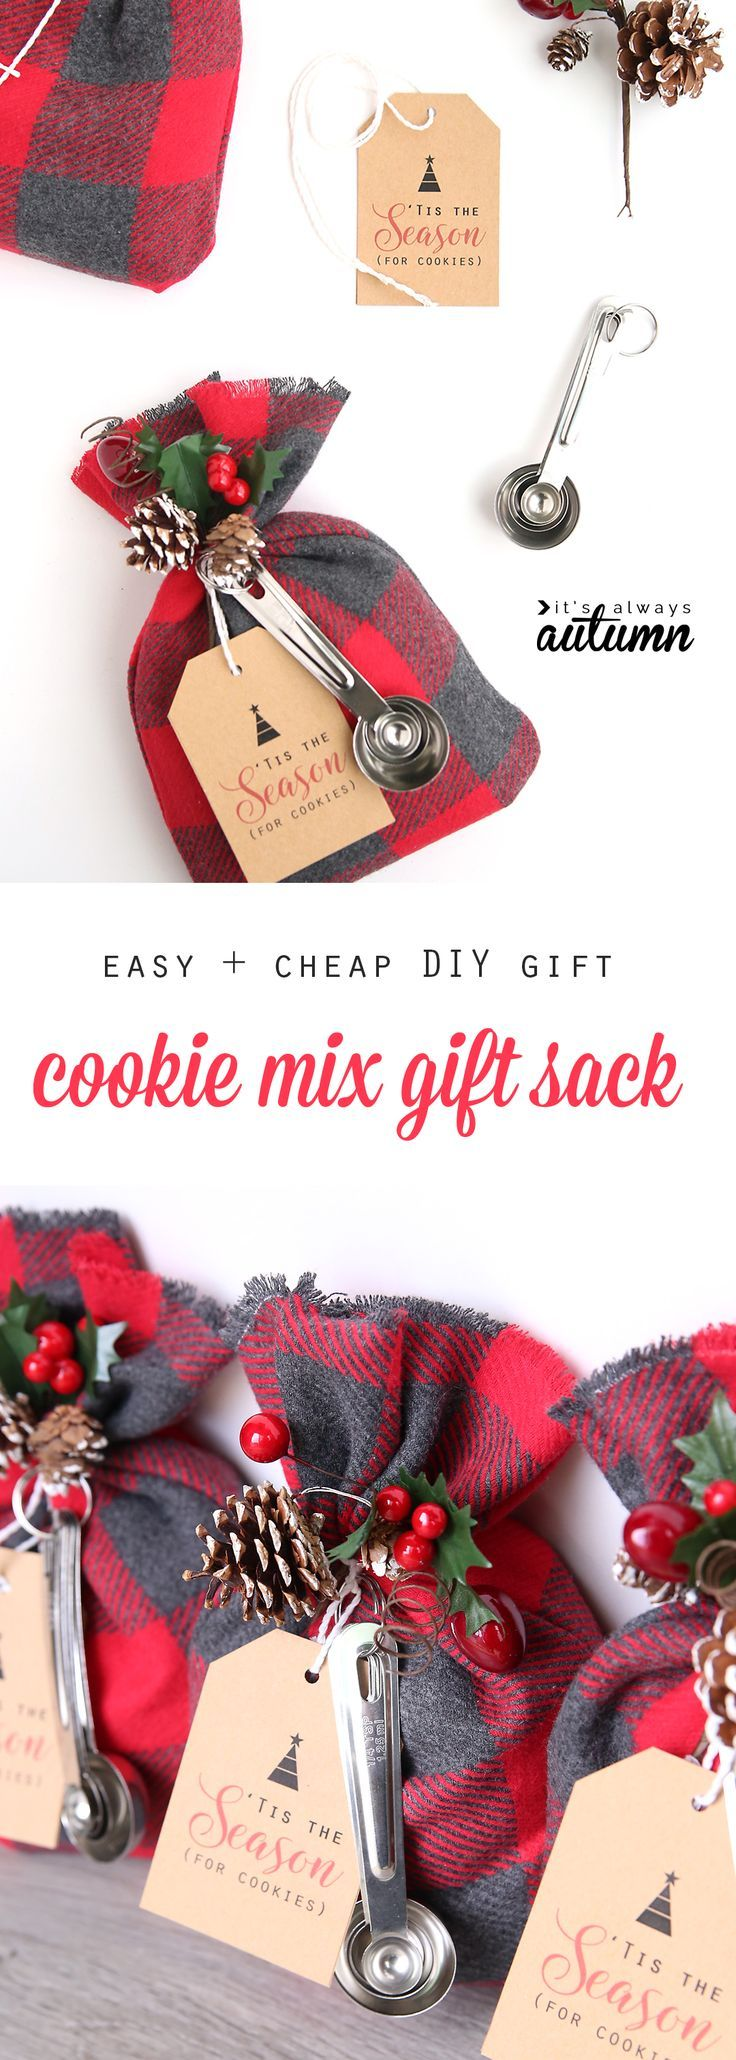 20 best christmas gifts images on Pinterest | Gift ideas, Xmas and ...